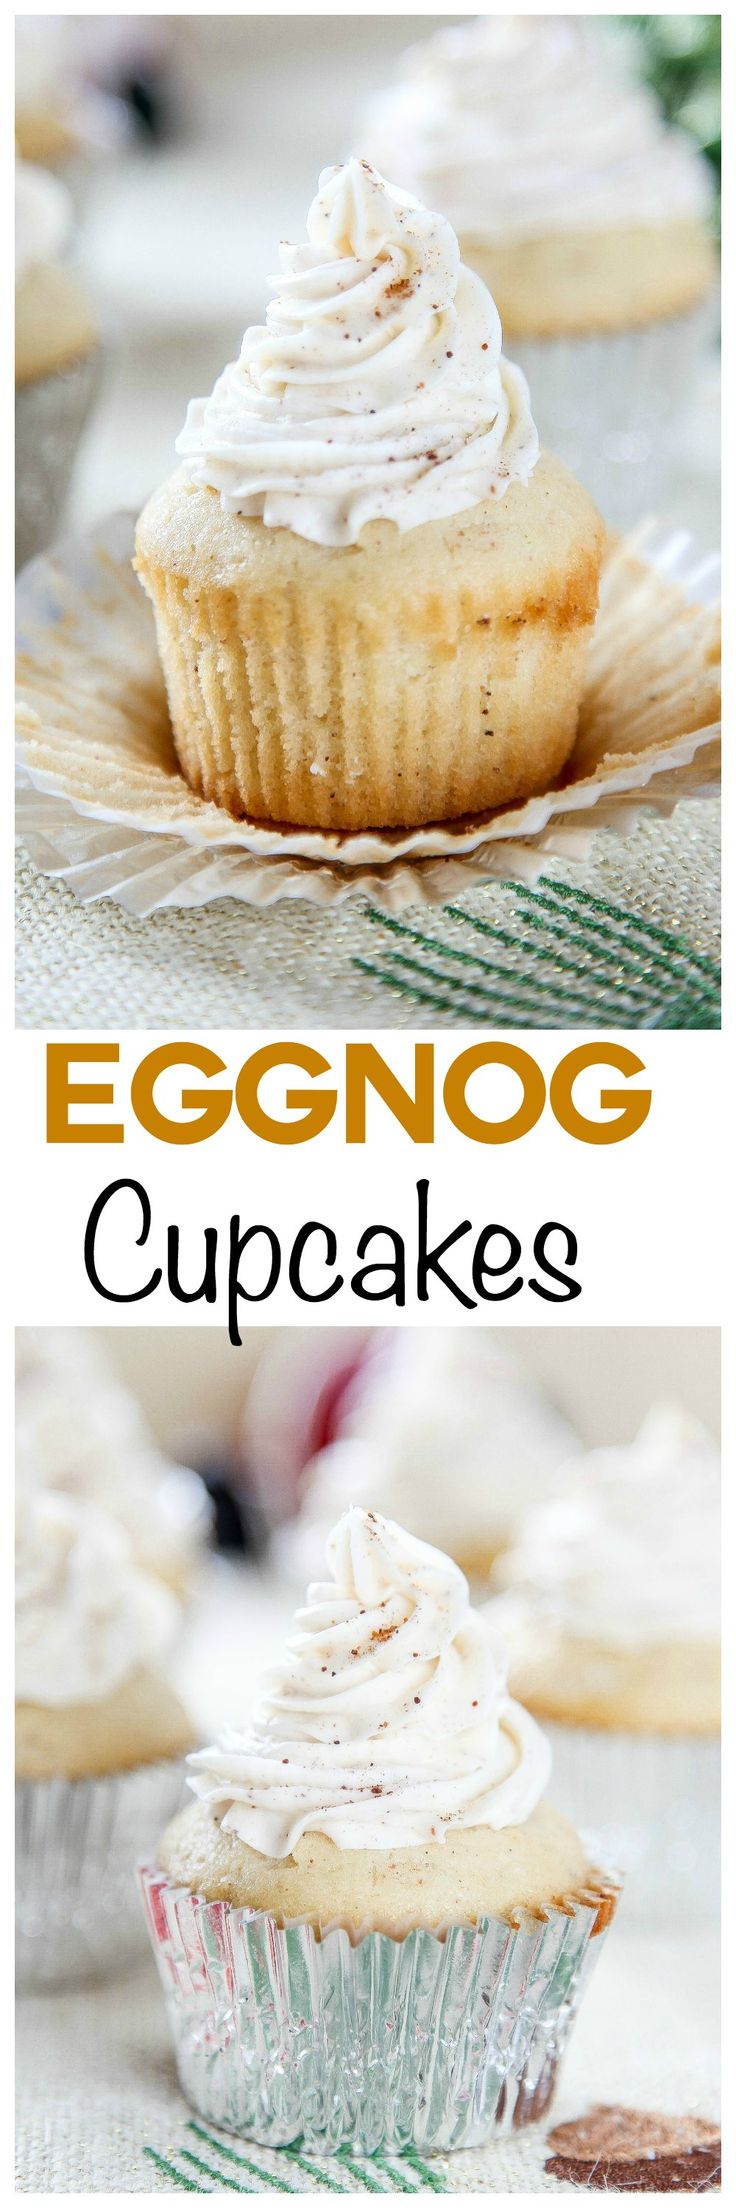 Homemade Eggnog Cupcakes:Moist eggnog cupcakes topped with a decadent eggnog frosting. Your favorite Christmas drink in cupcake form!